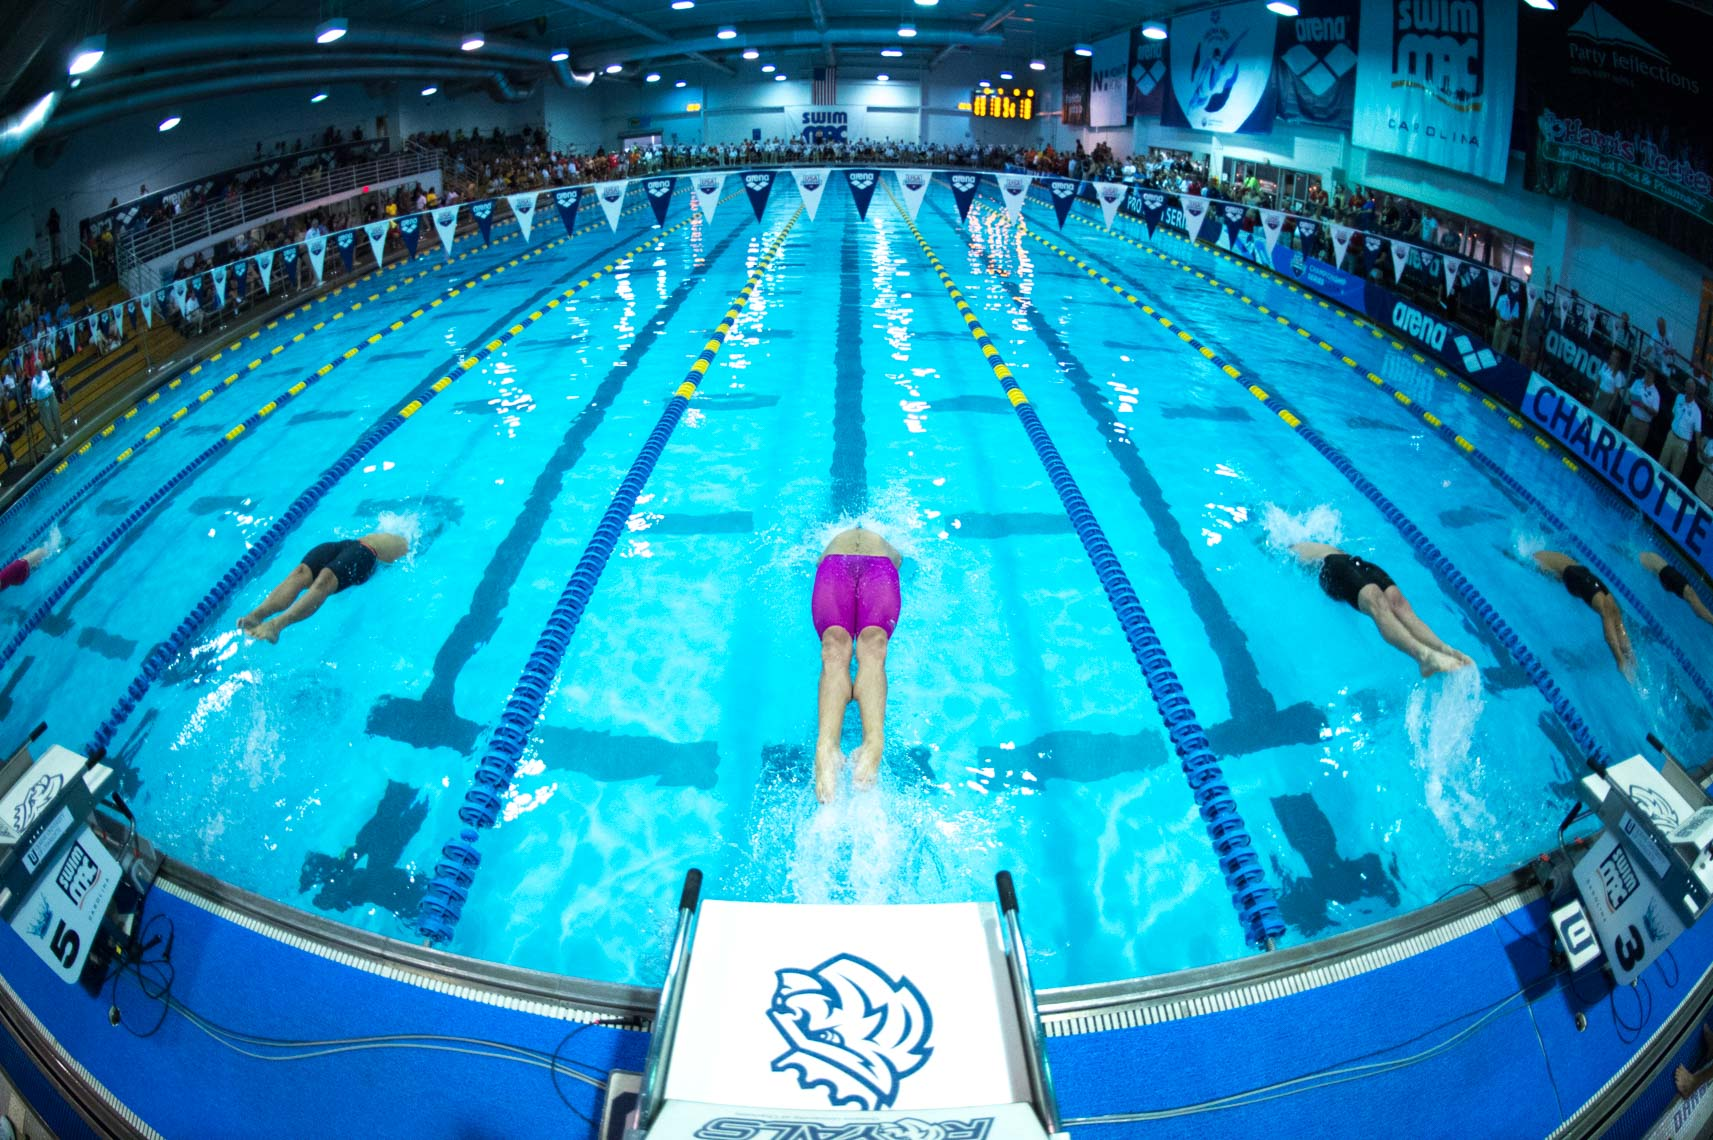 competitive swimming start